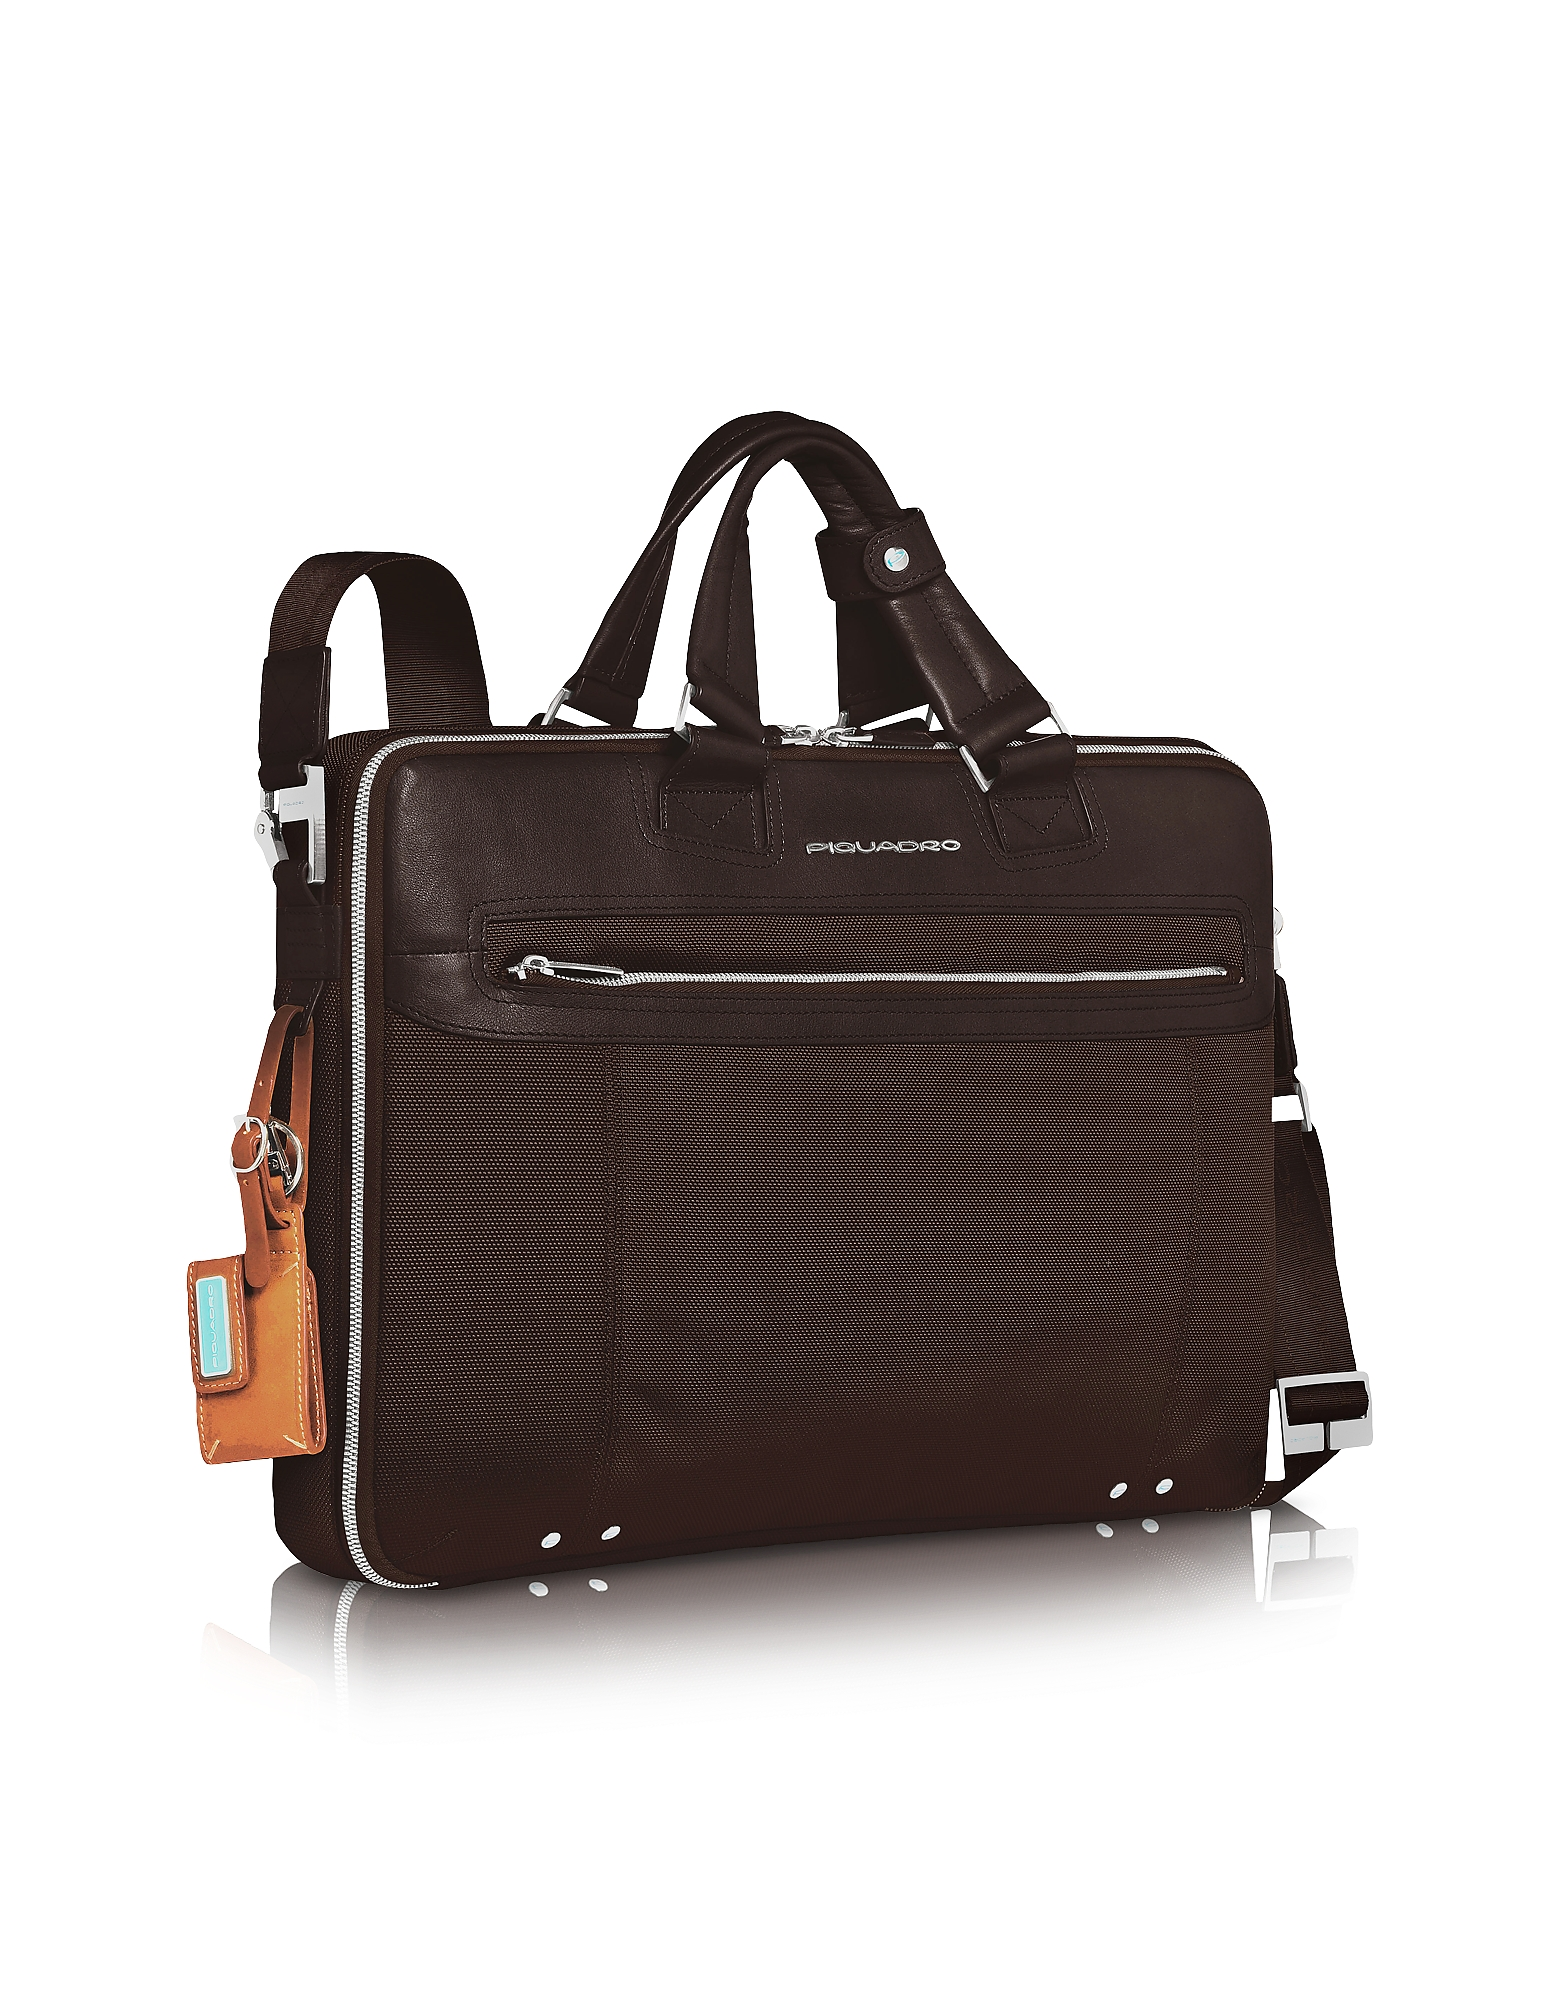 Link – Double Handle 17″ Laptop Case